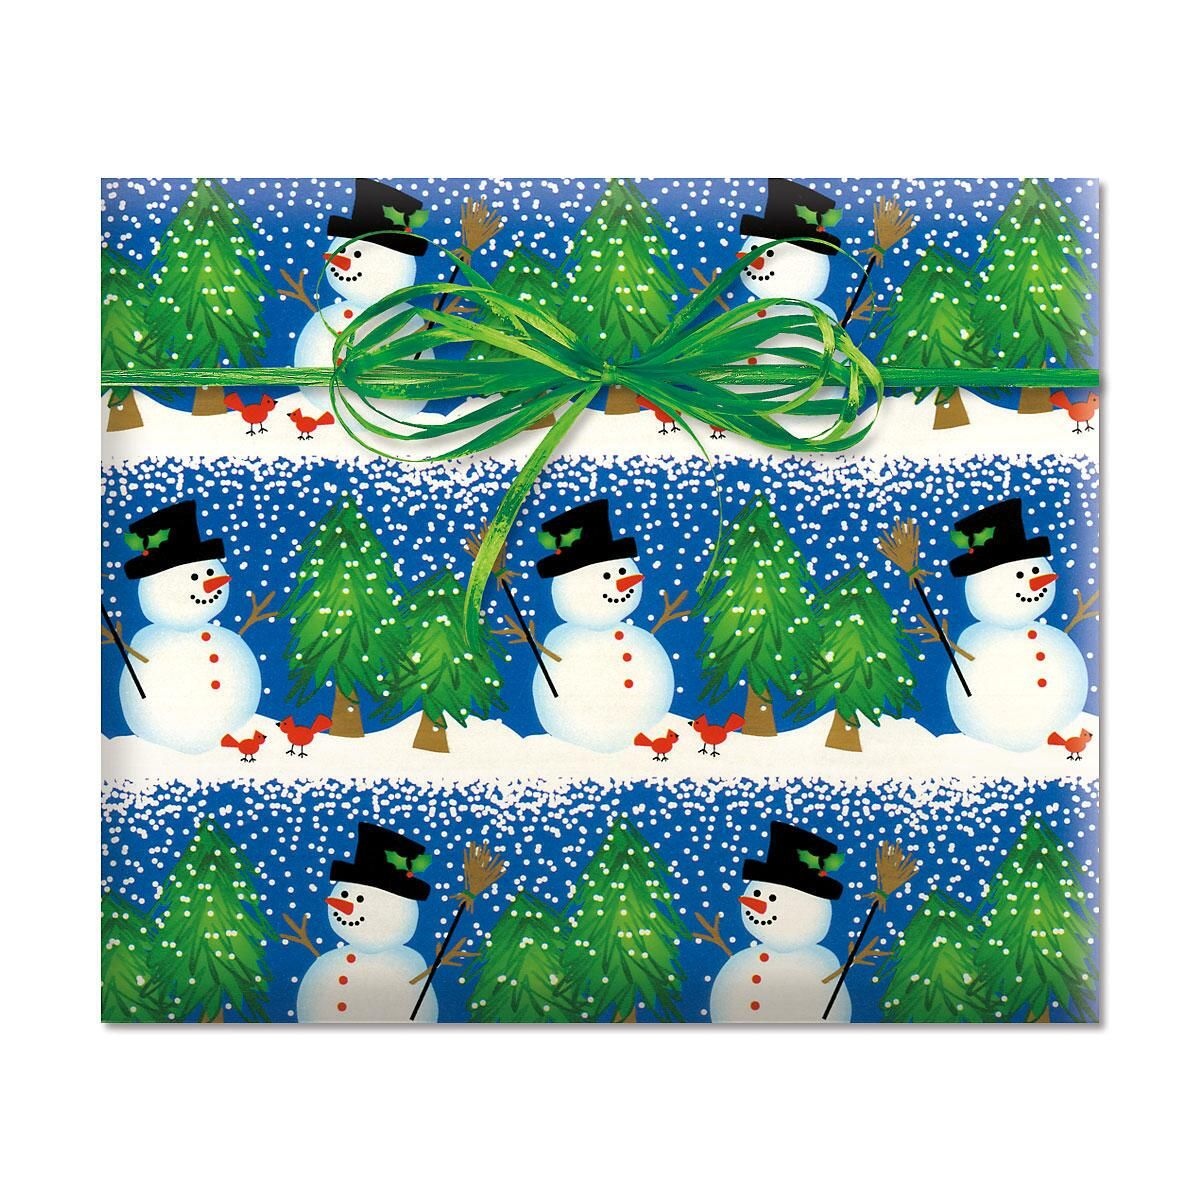 Snowman Blizzard Classic-Size Rolled Gift Wrap